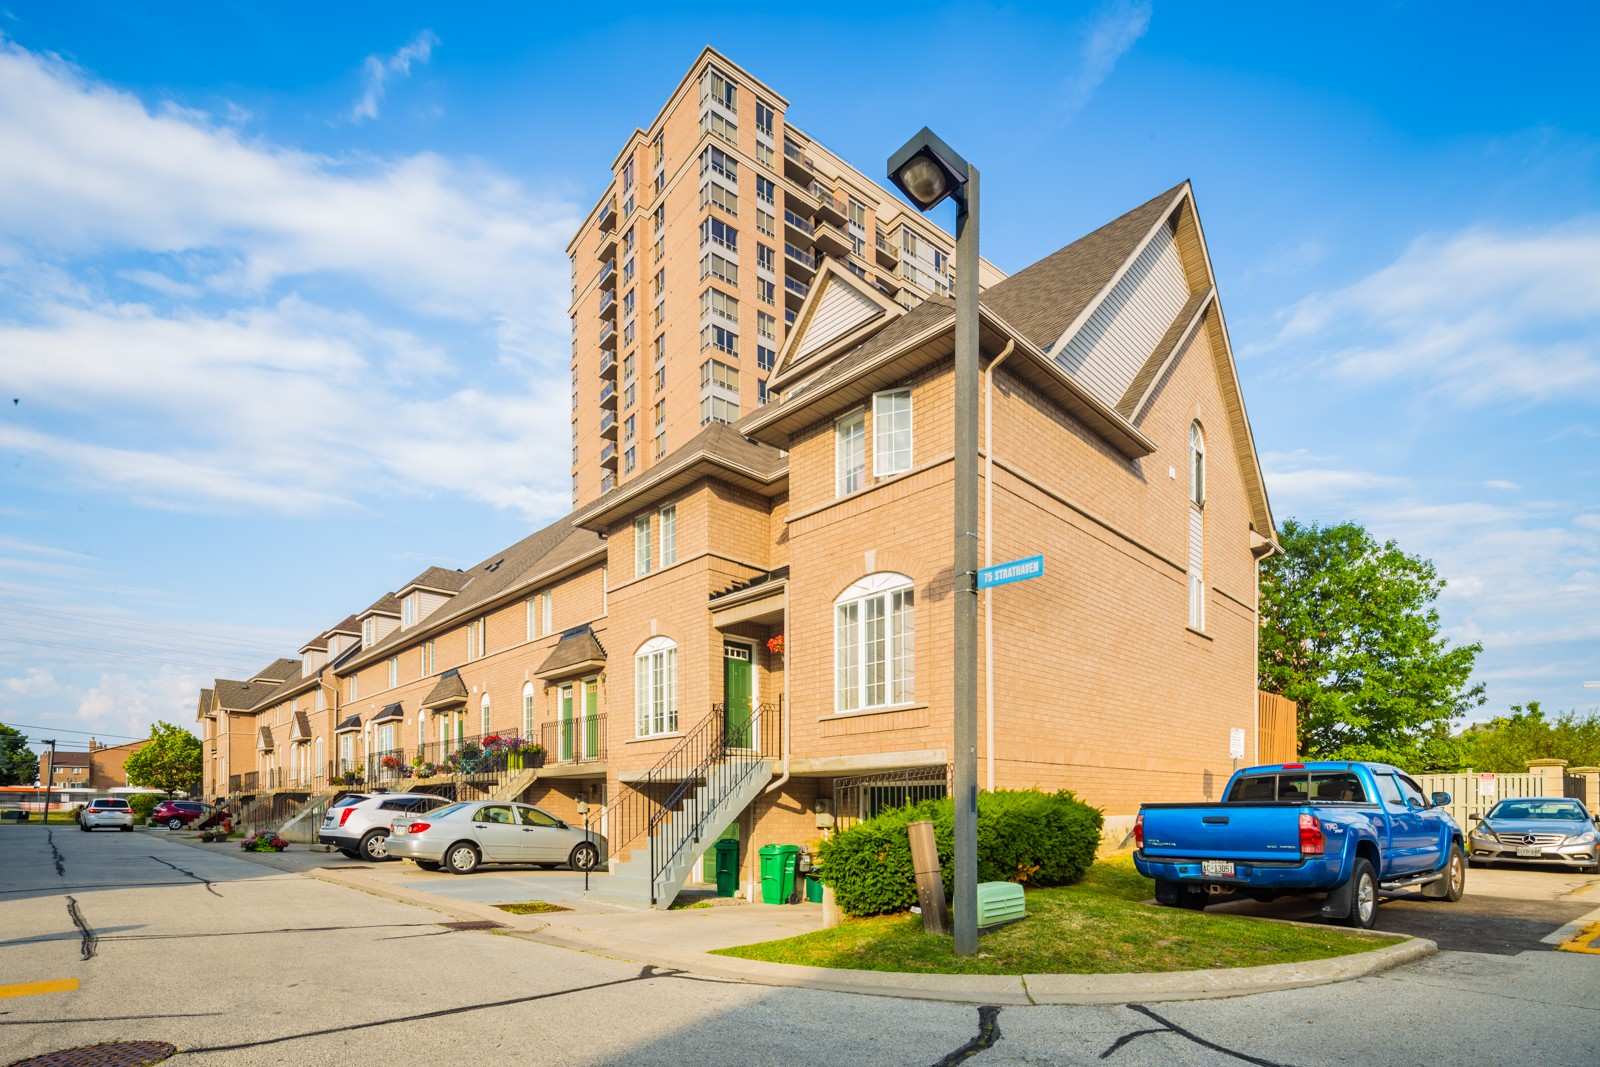 75 Strathaven Drive Townhouses at 75 Strathaven Dr, Mississauga 0